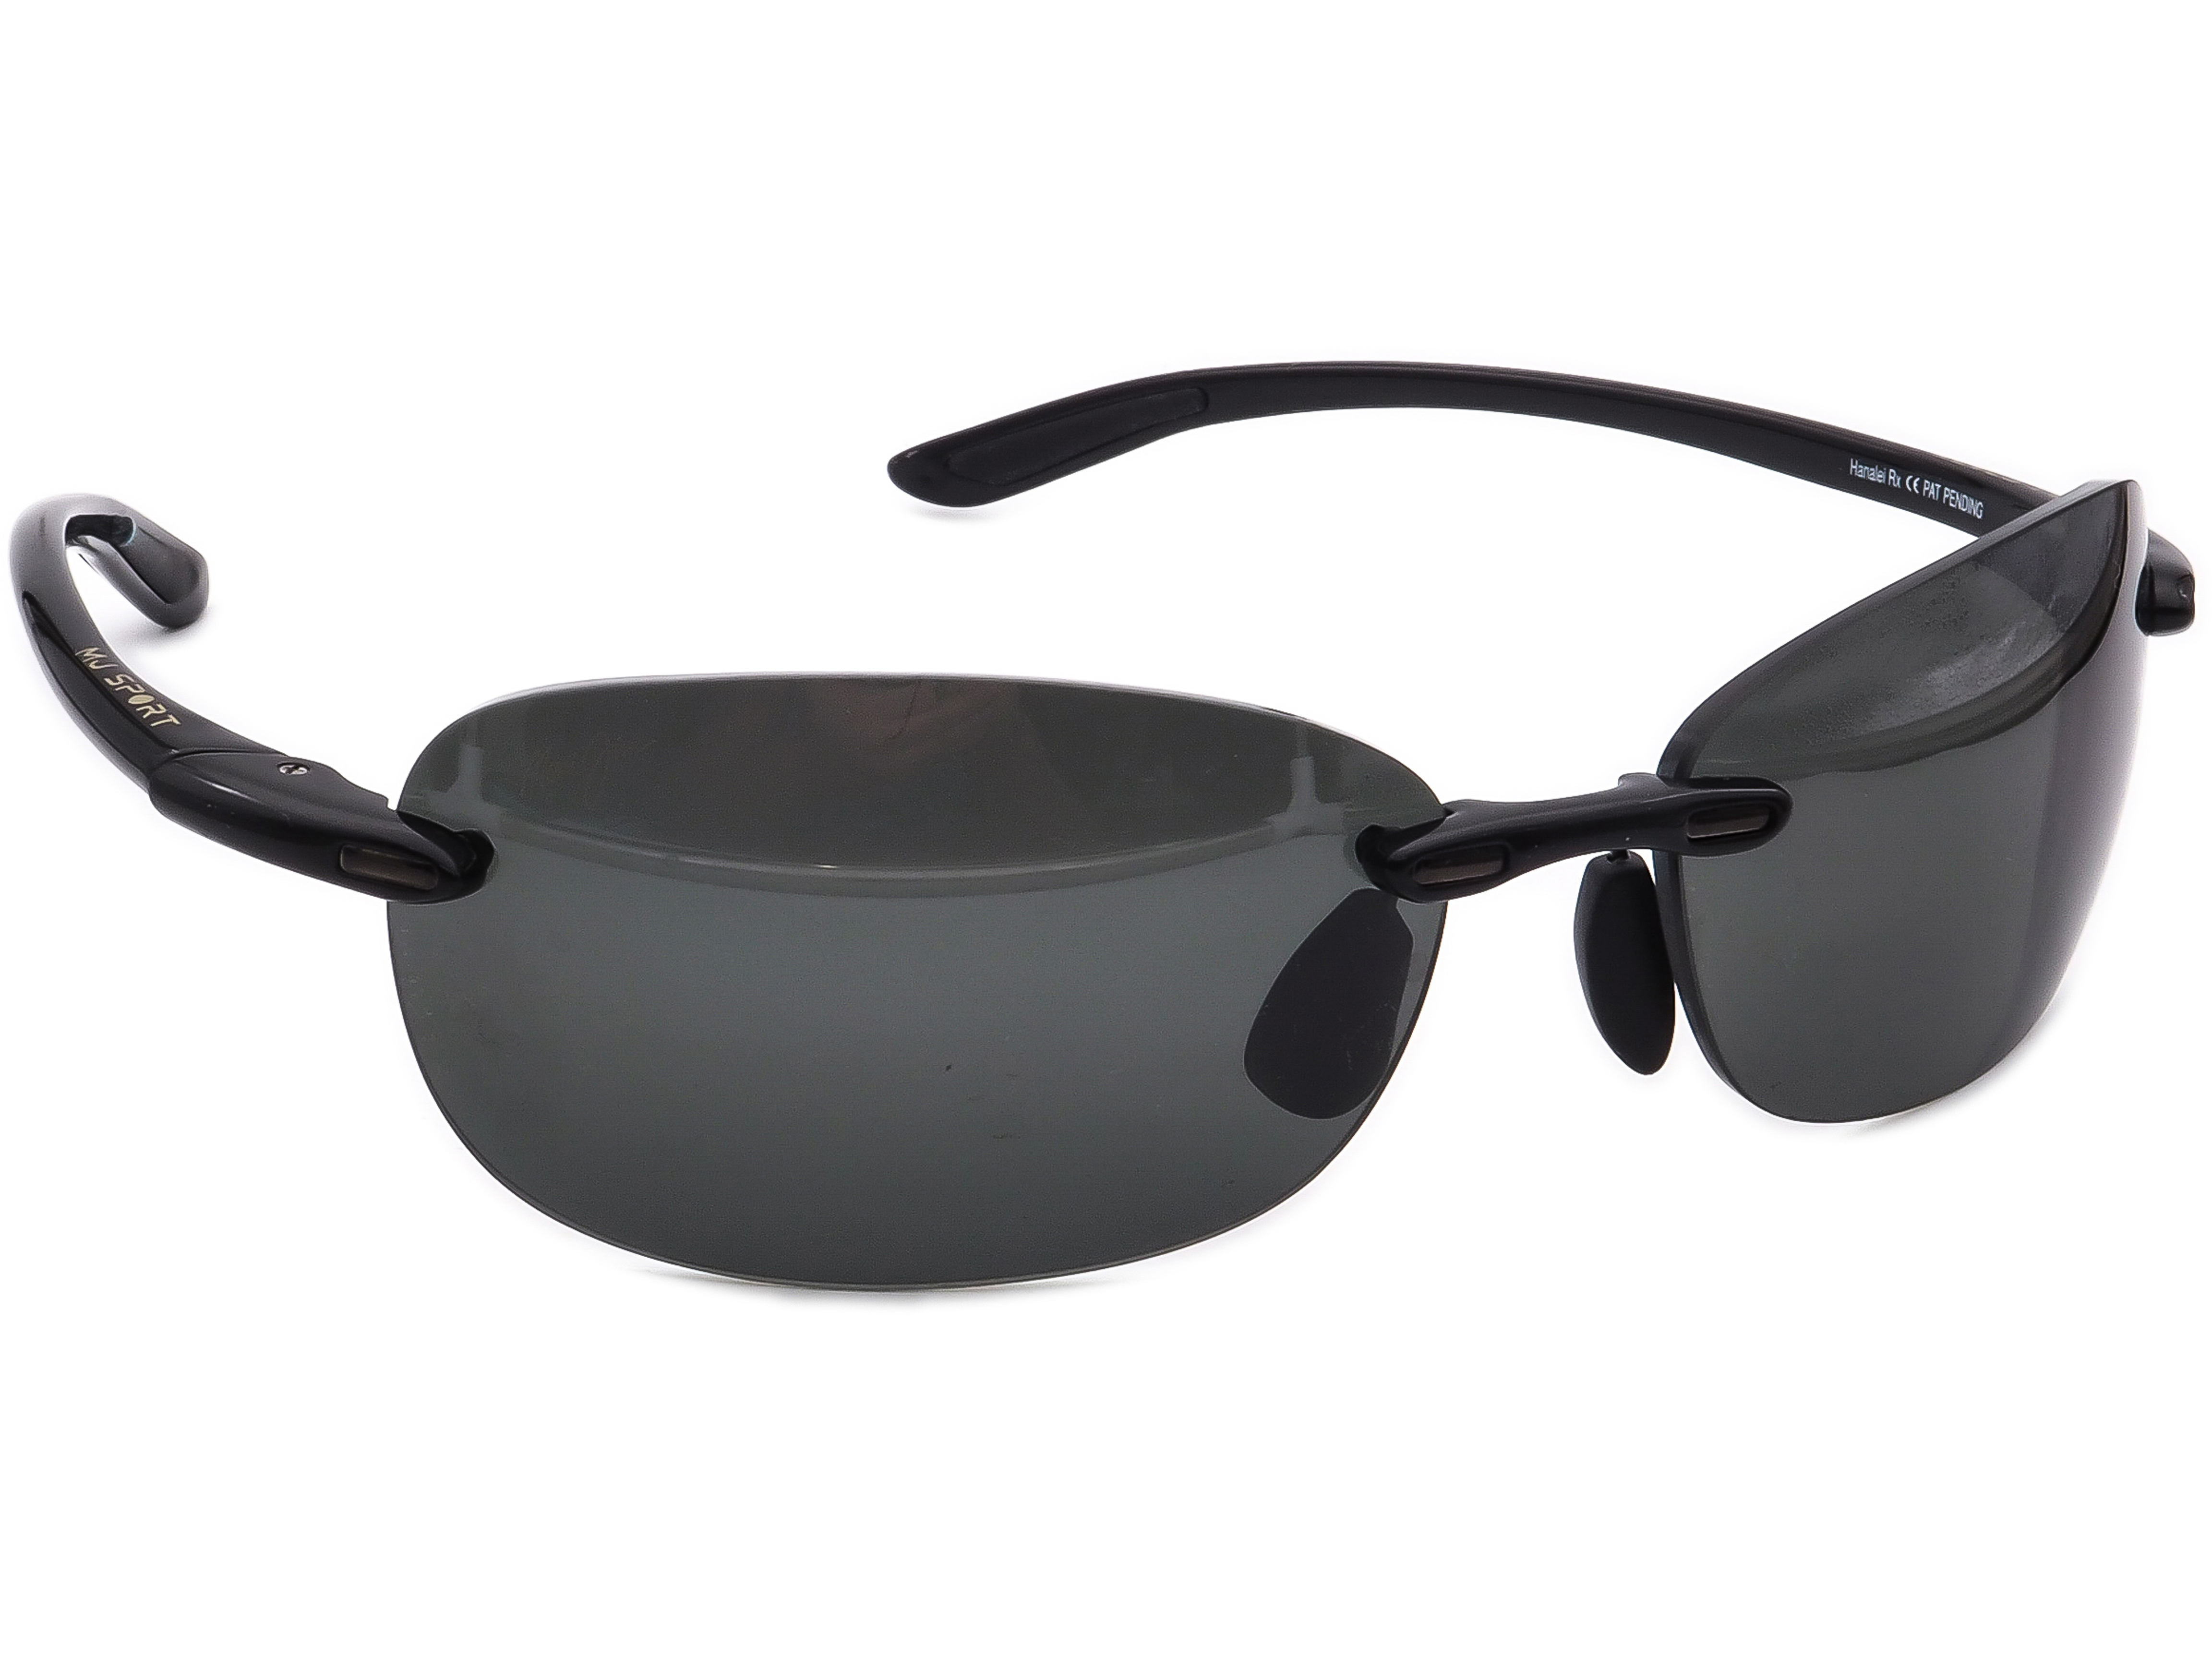 Maui Jim MJ-913-02 Hanalei Rx Sport Sunglasses Frame Only